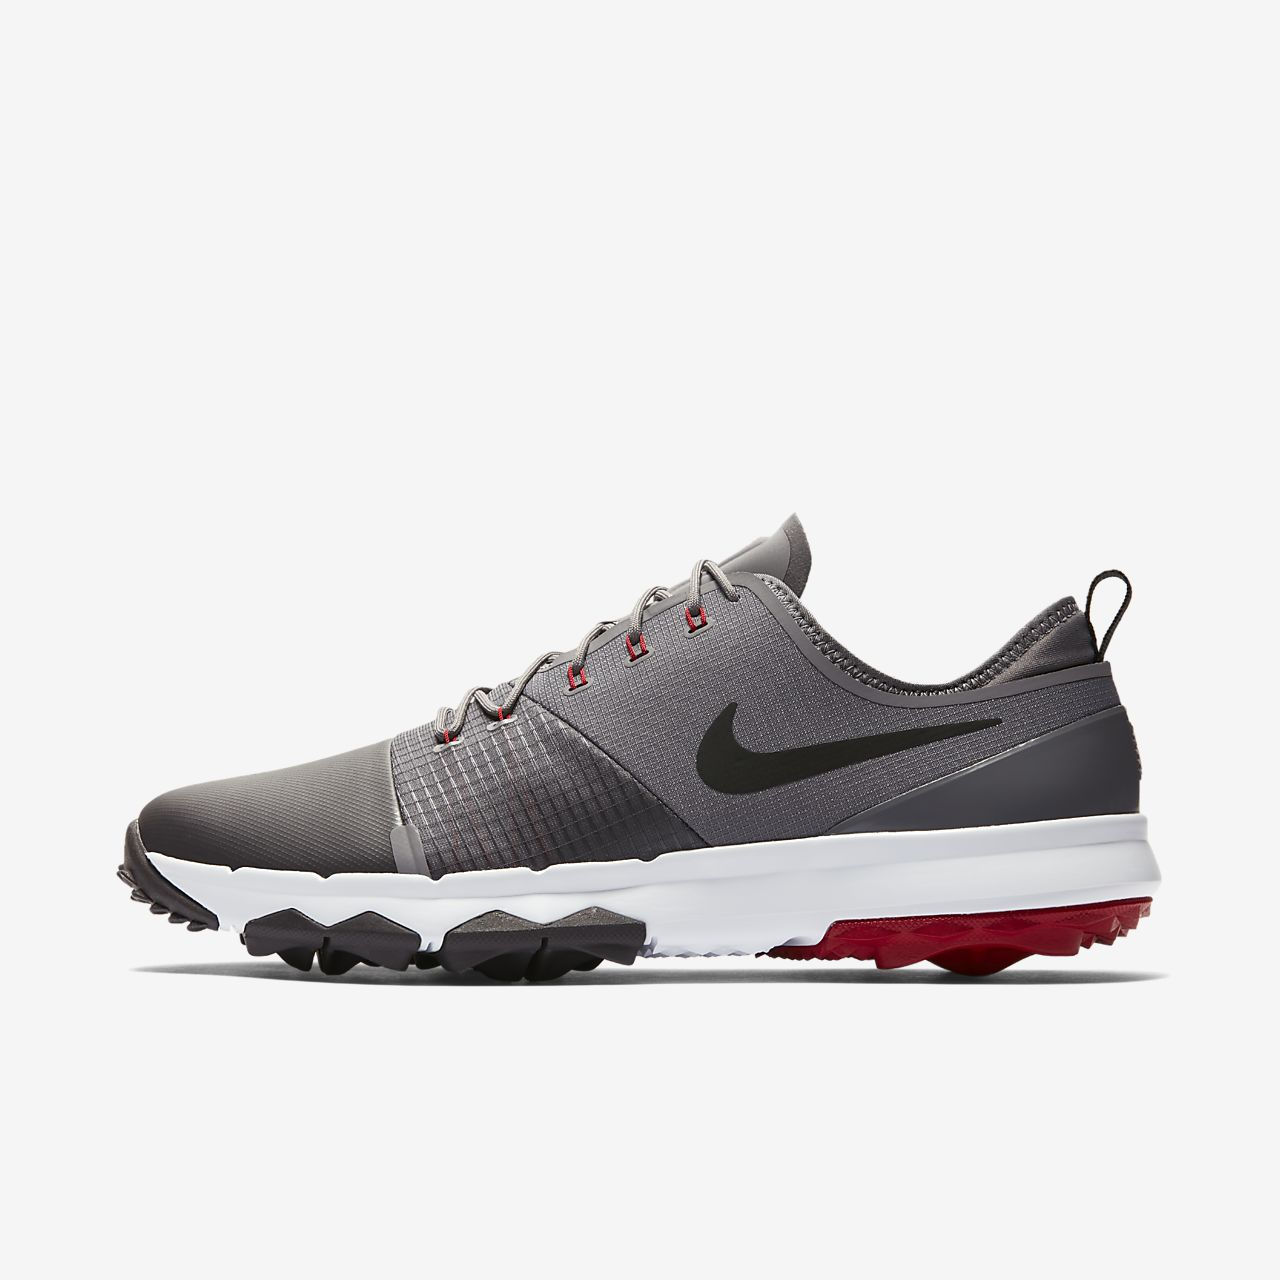 007efe26aa0 Nike FI Impact 3 Men s Golf Shoe. Nike.com GB